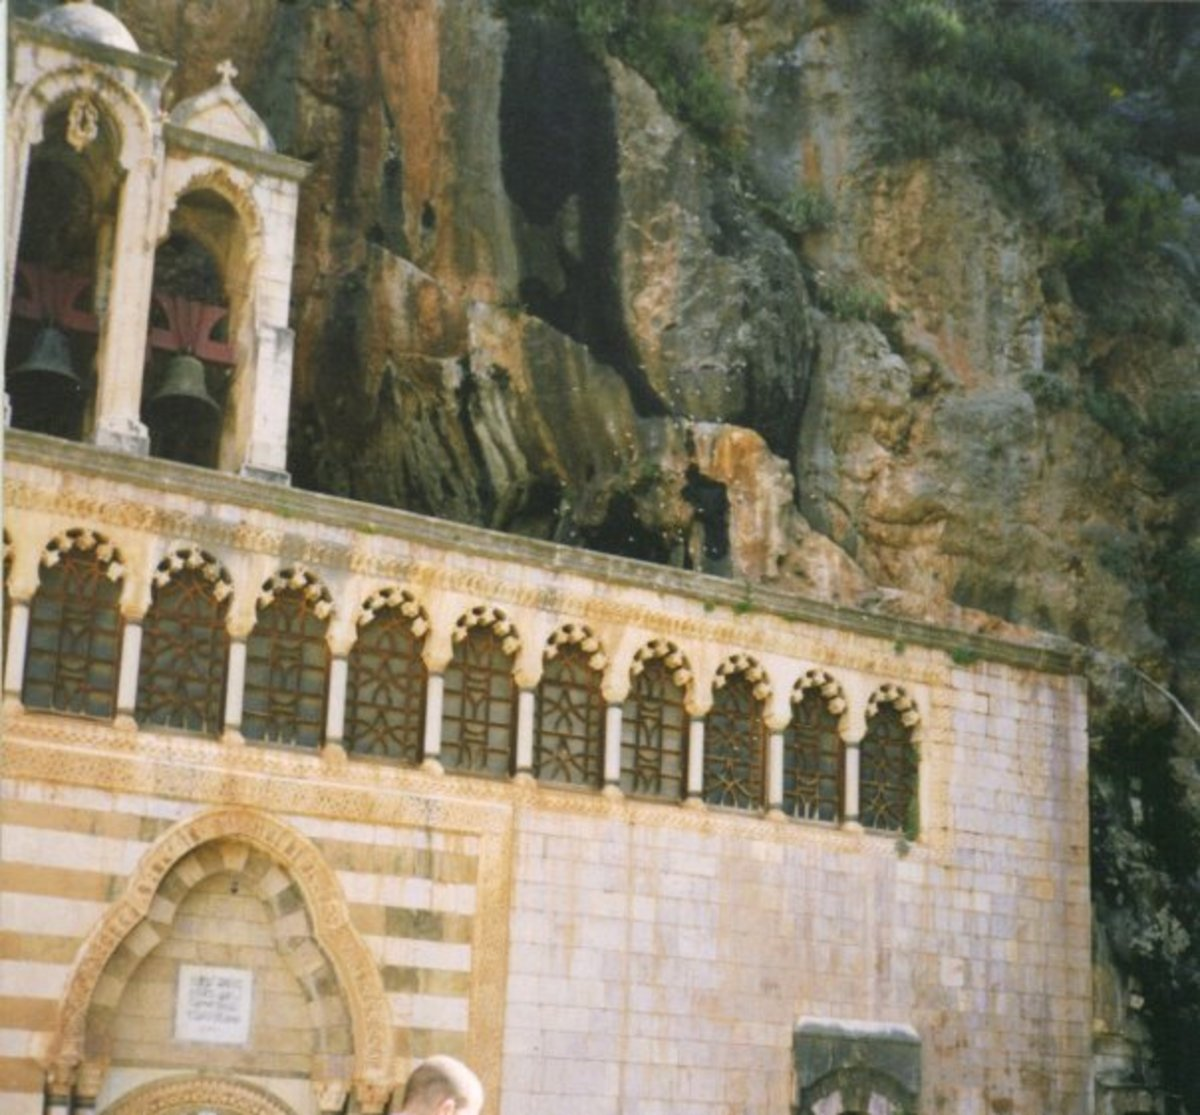 Church Built into a Rock, Deir Qannoubine, North of Lebanon. I took this picture in the early 1990s.